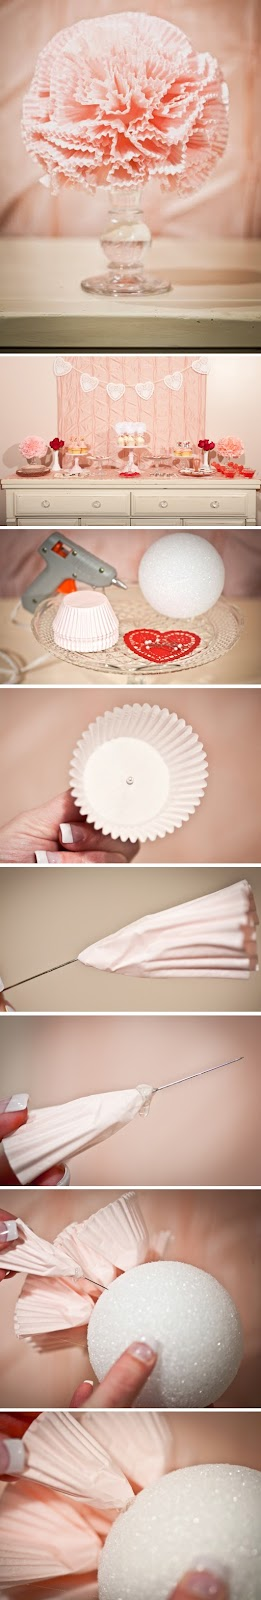 DIY cupcake liner tutorial floral pomander for a wedding